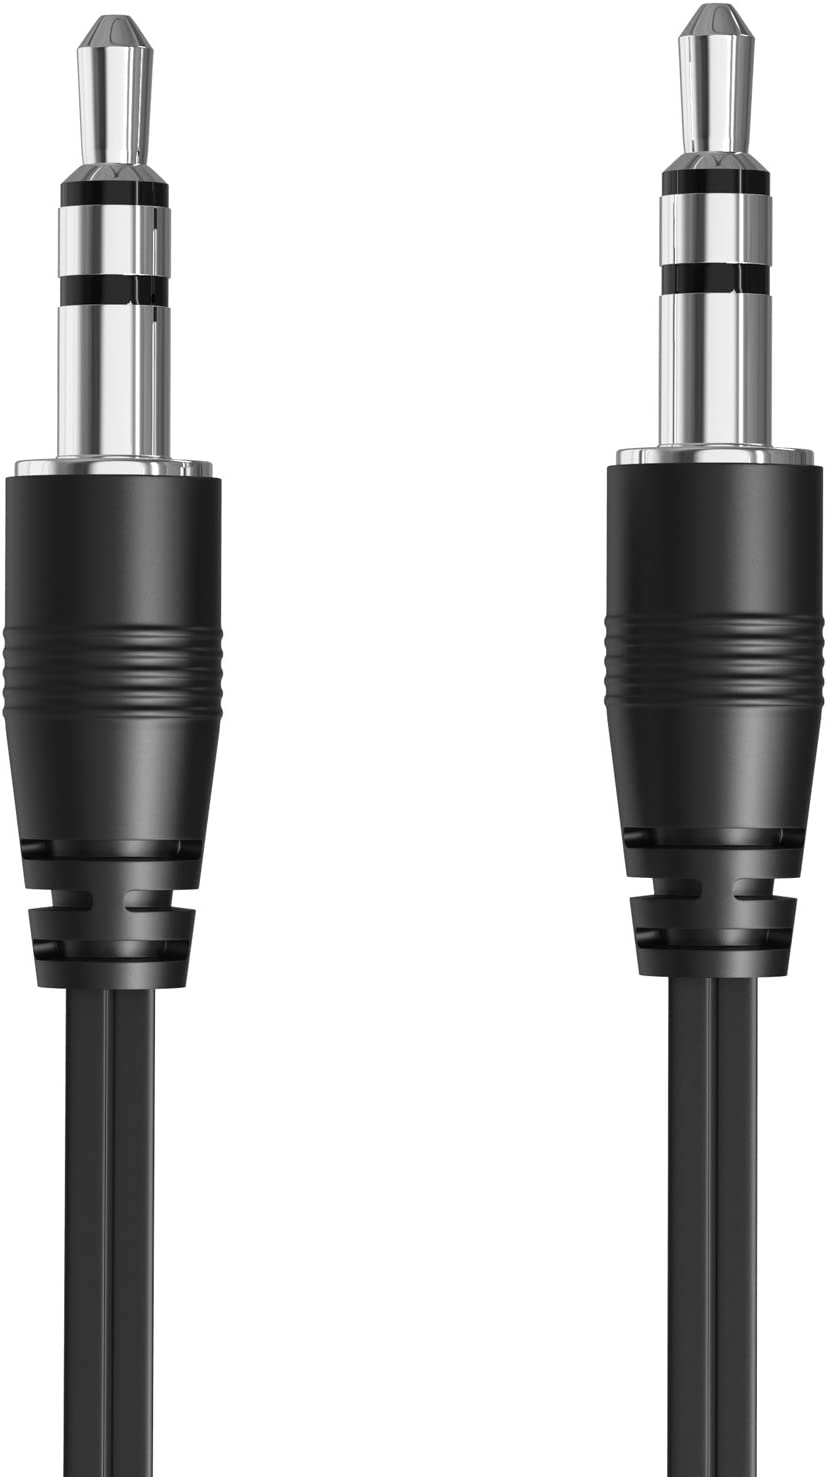 HTC One M9 // M9 Plus + Fosmon 3 Pack Samsung Galaxy S6 // S6 Edge 3.5mm Retractable Aux Cable Auxiliary Audio Cord for Apple iPhone 6//6 Plus